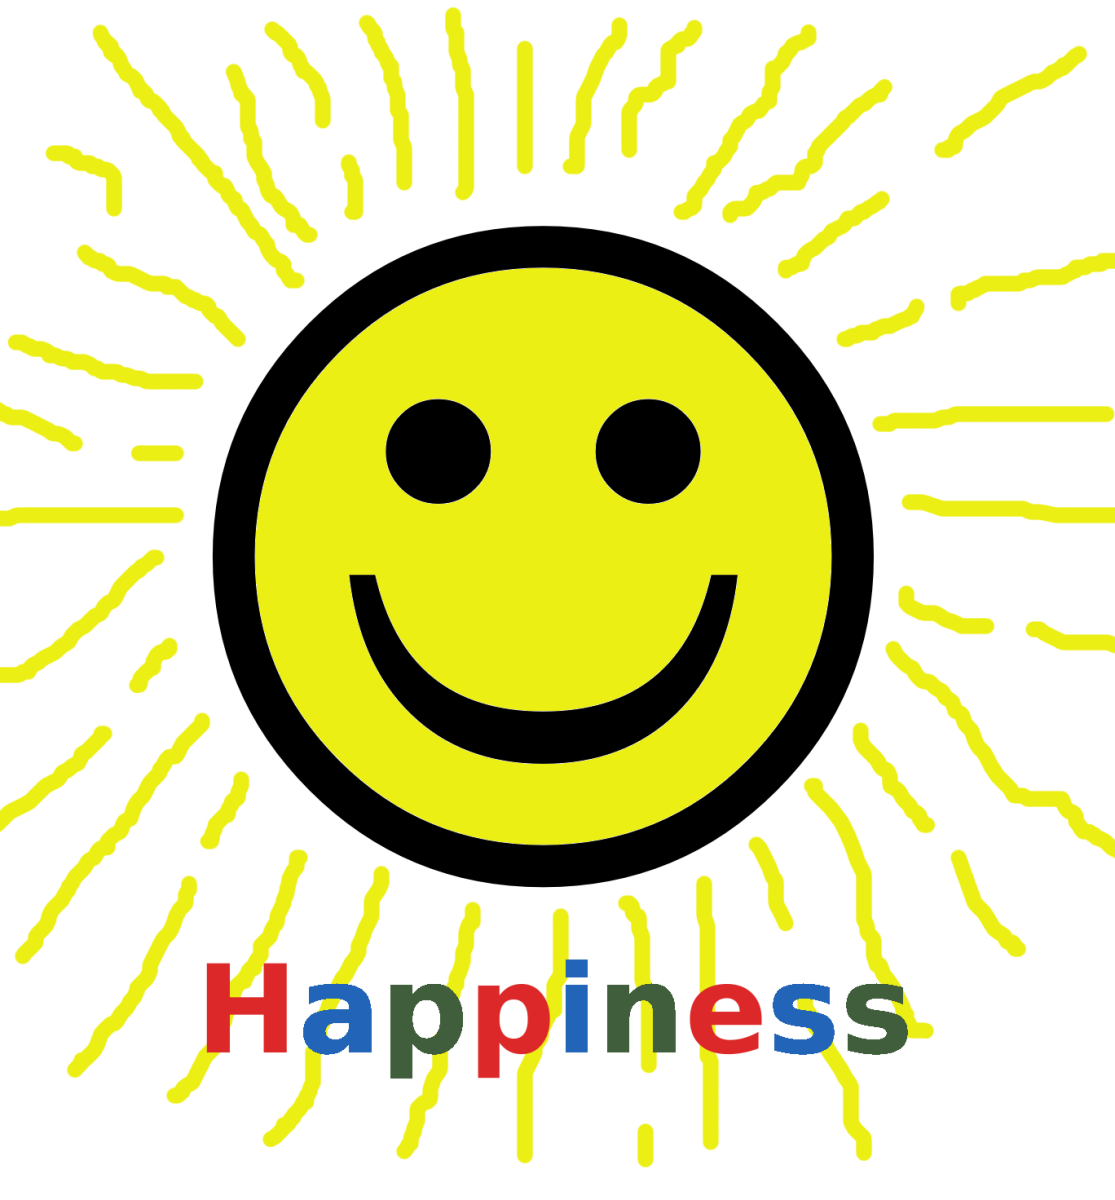 Plotinus believed that all goodness, such as happiness, radiated from the One.